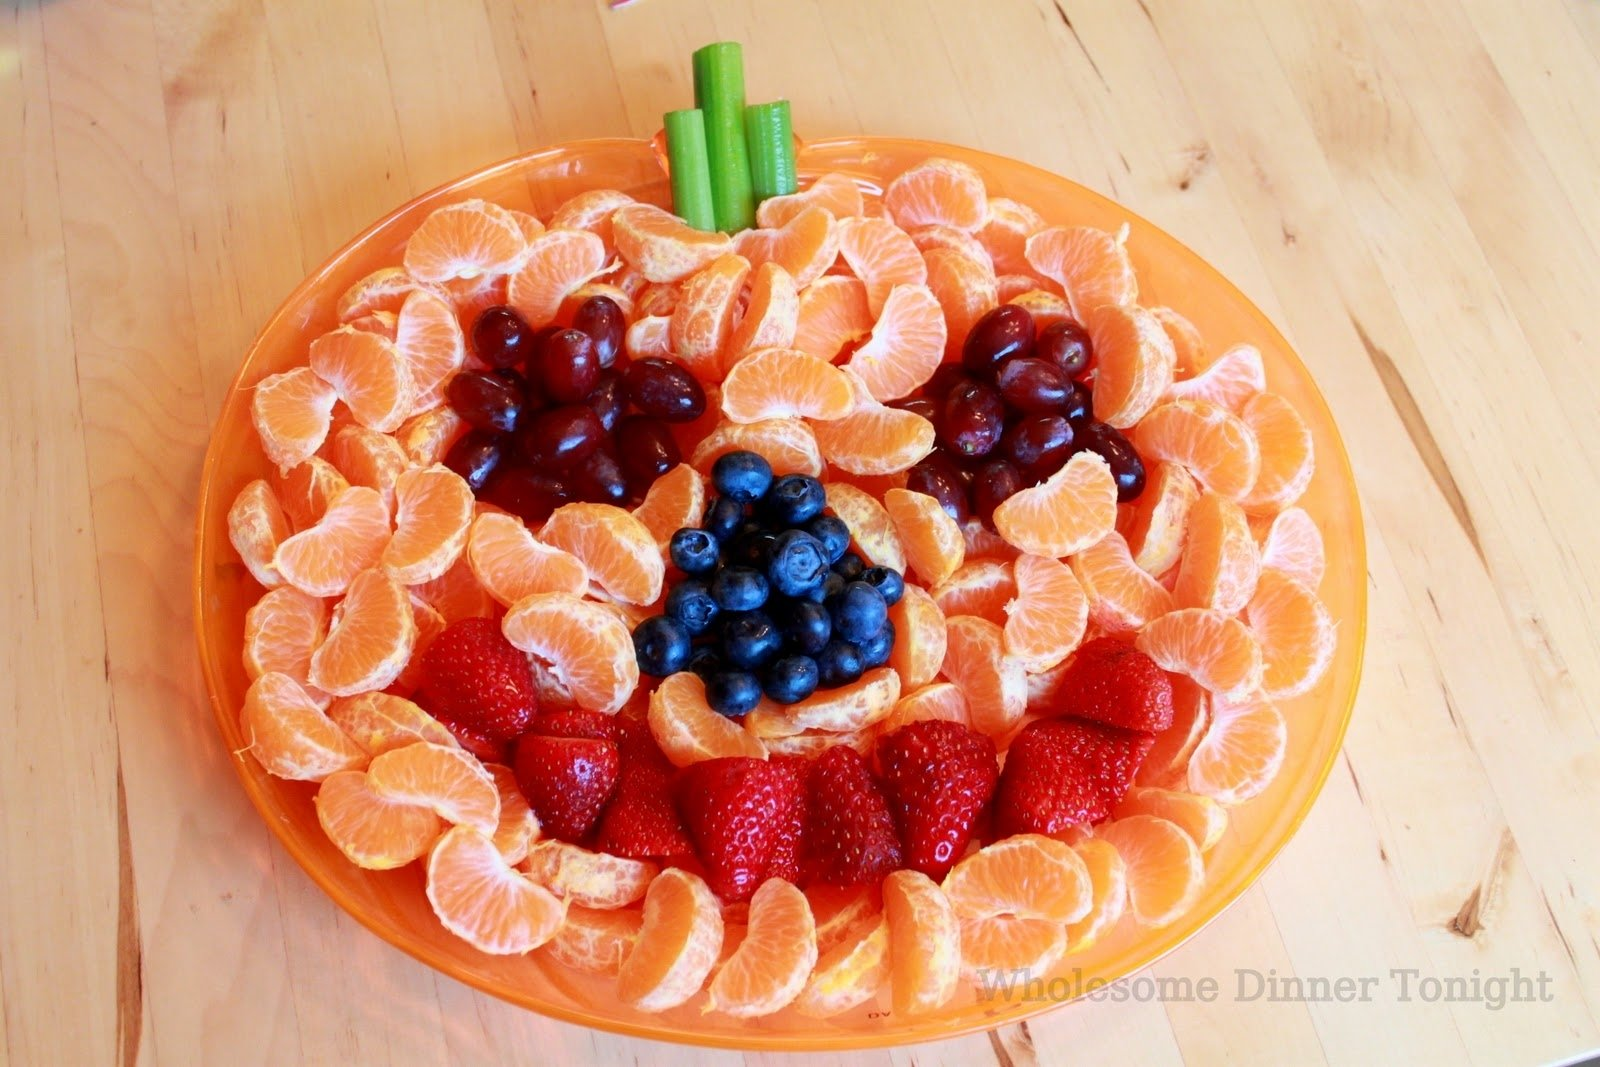 10 Stylish Halloween Food Ideas For Kids Party top 15 paleo halloween treats party food ideas 9 2020